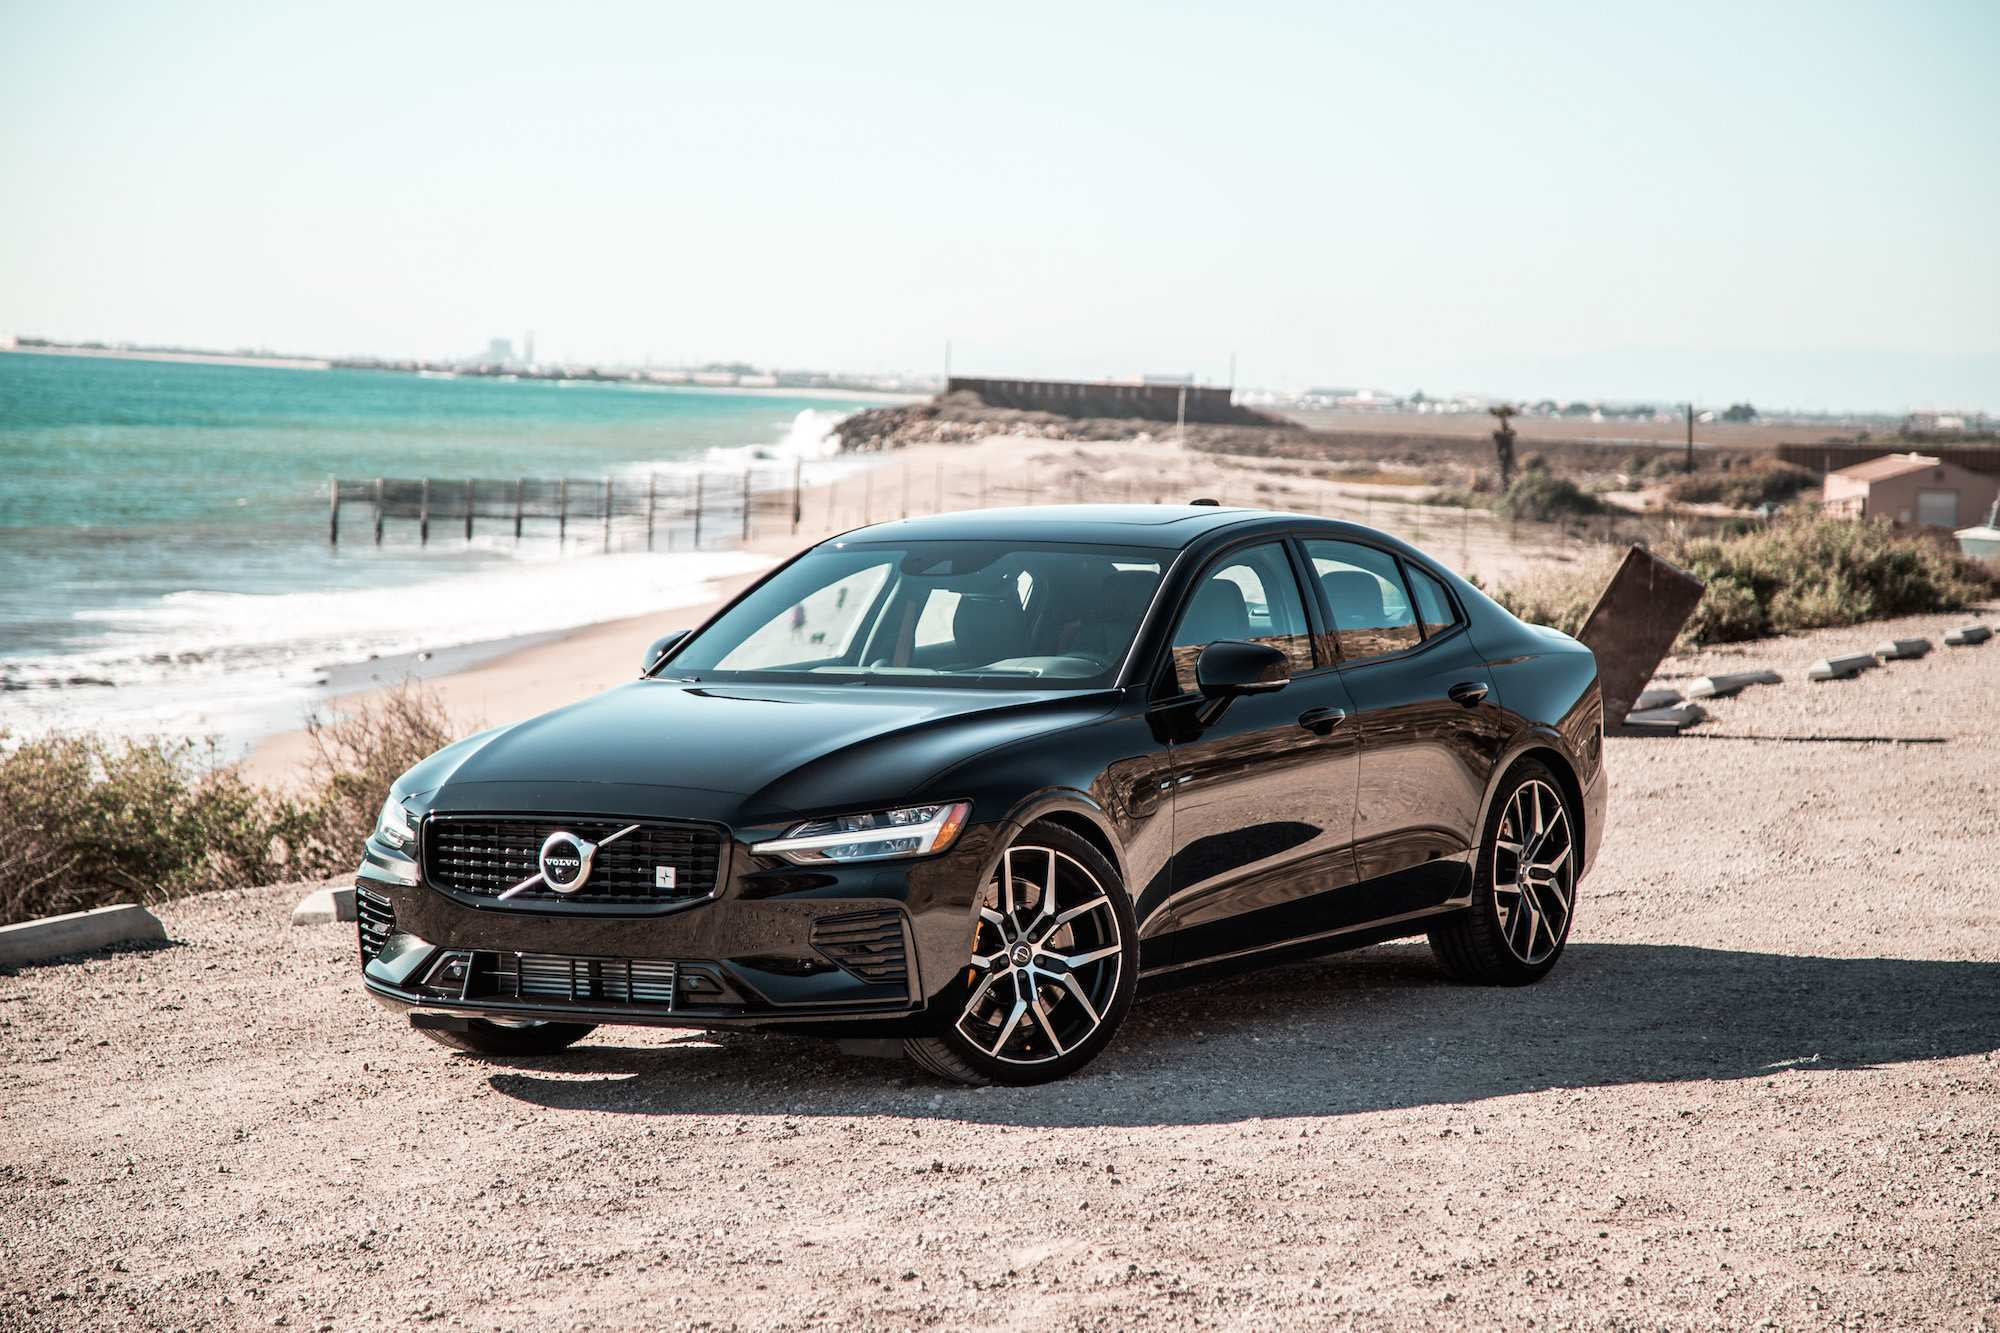 36 New Volvo V60 Polestar 2020 Price And Release Date